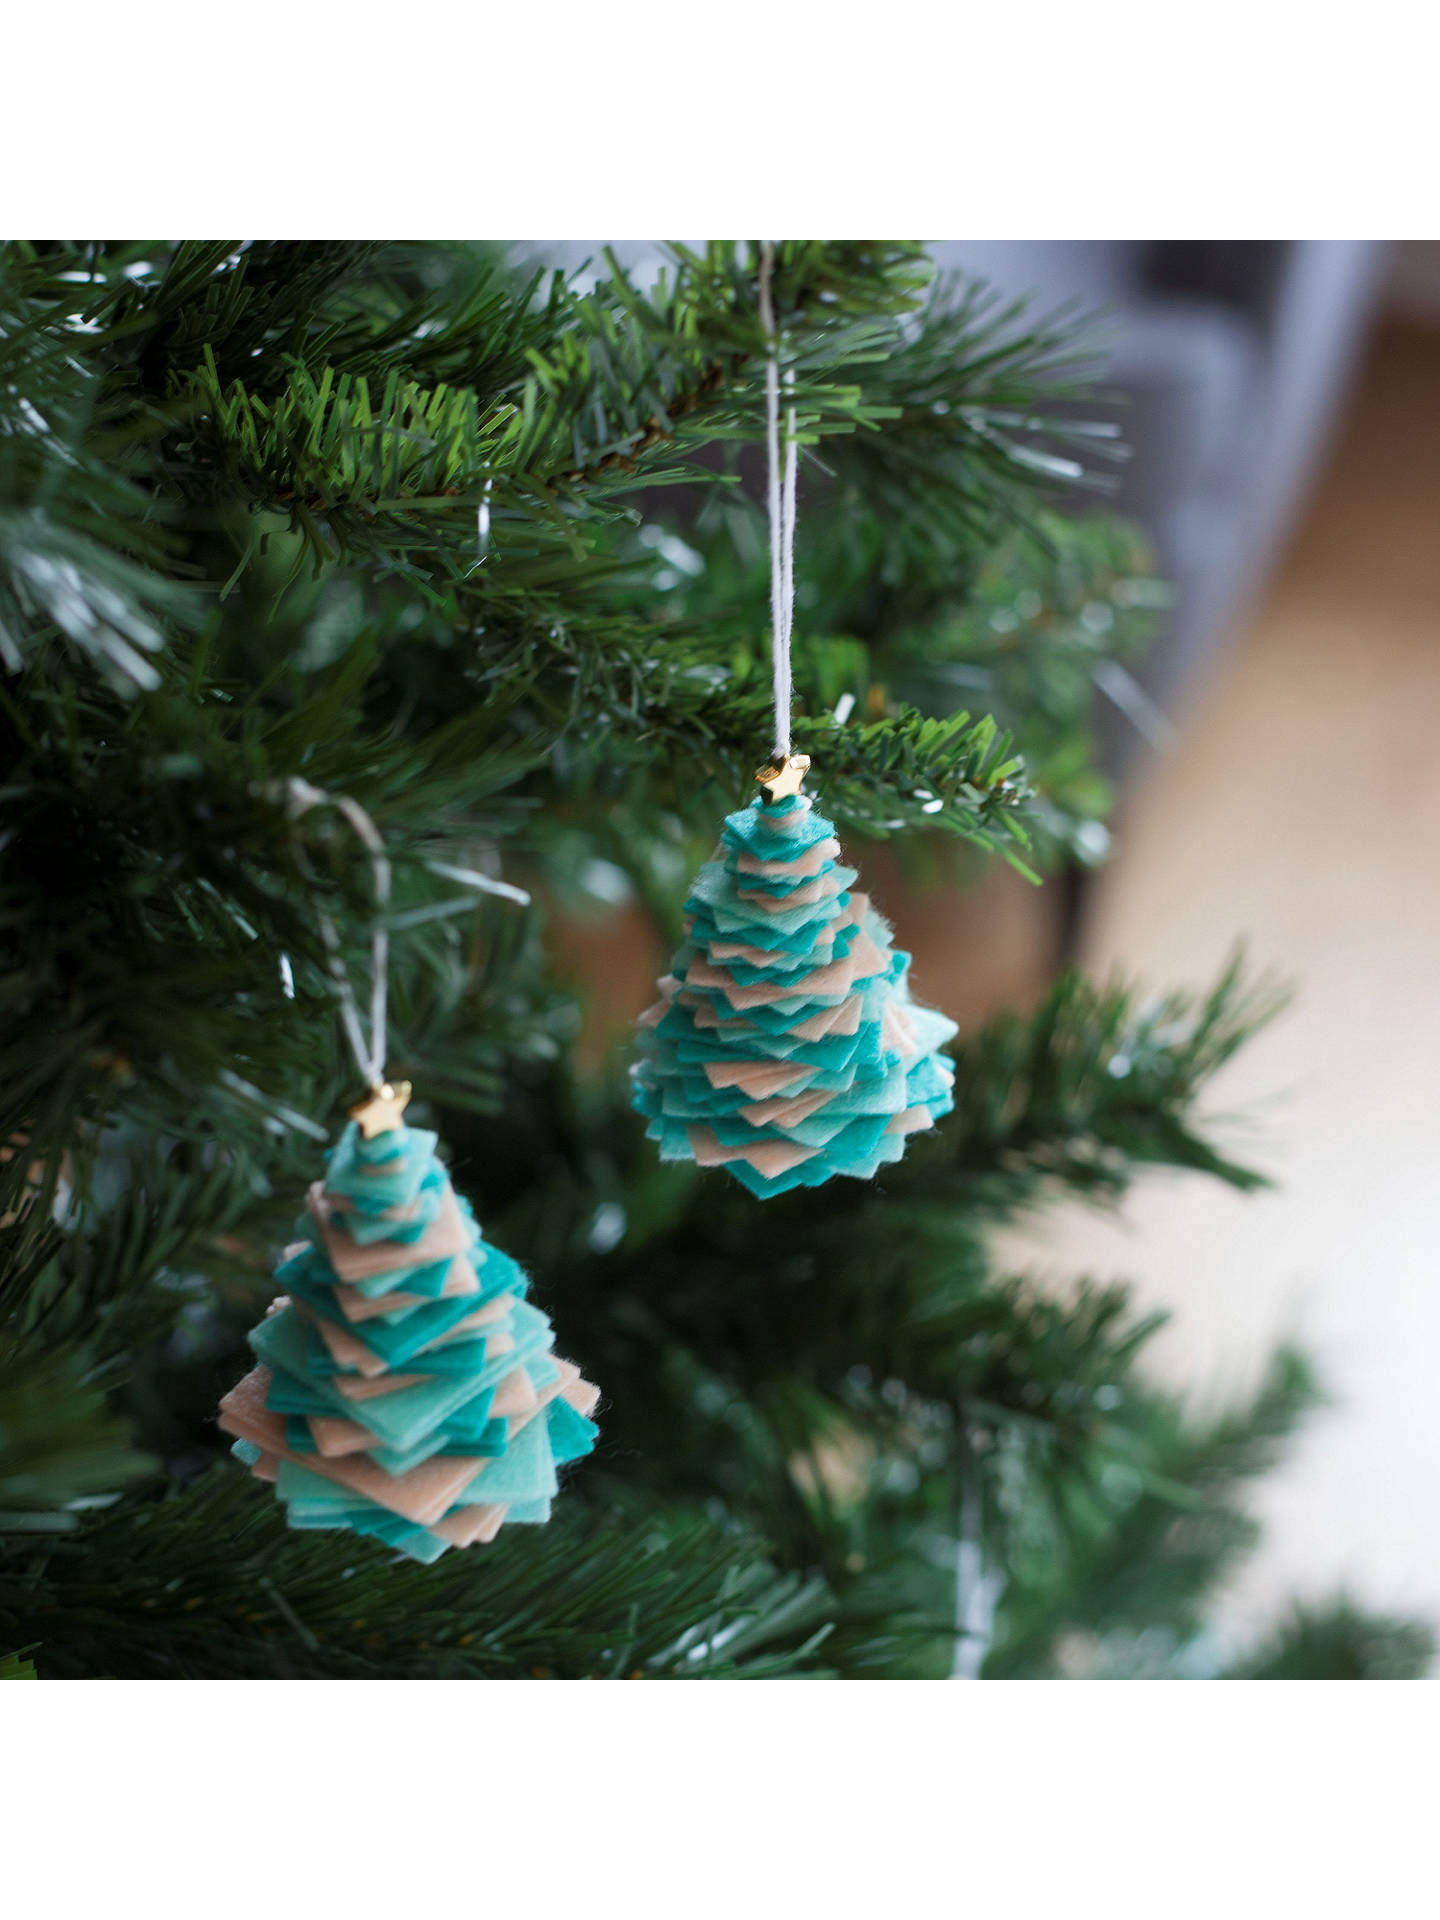 ... Buy Crafter's Companion Create Your Own Felt Christmas Tree Decorations, Pack of 3 Online at ...